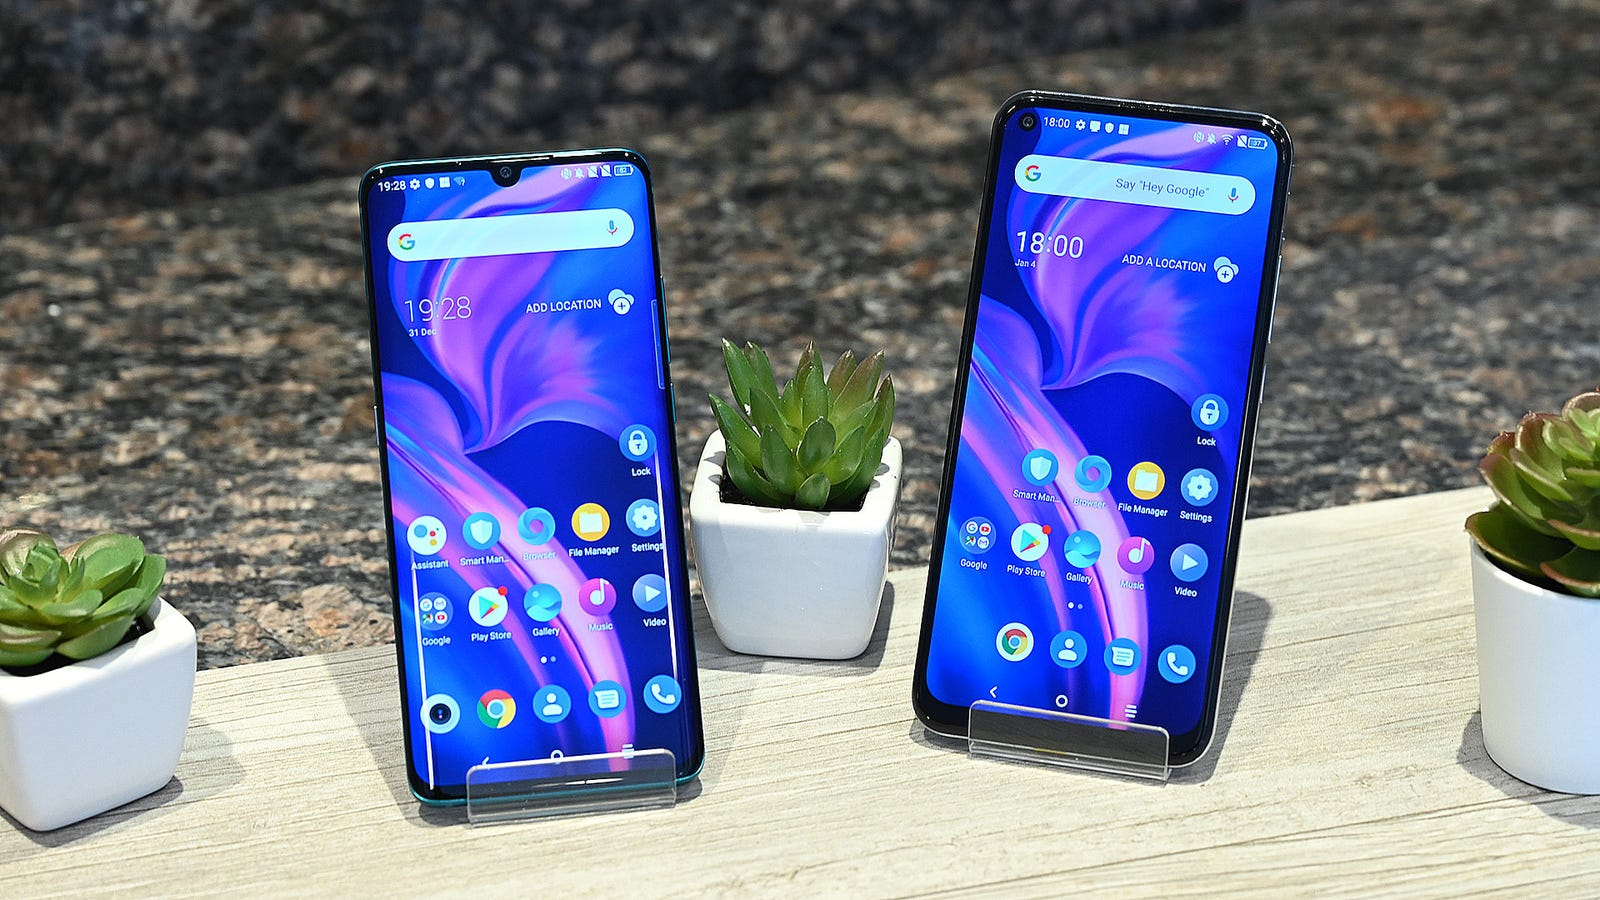 The TCL 10 Pro with its central notch and curved glass is on the left, while the TCL 10 5G is on the right.